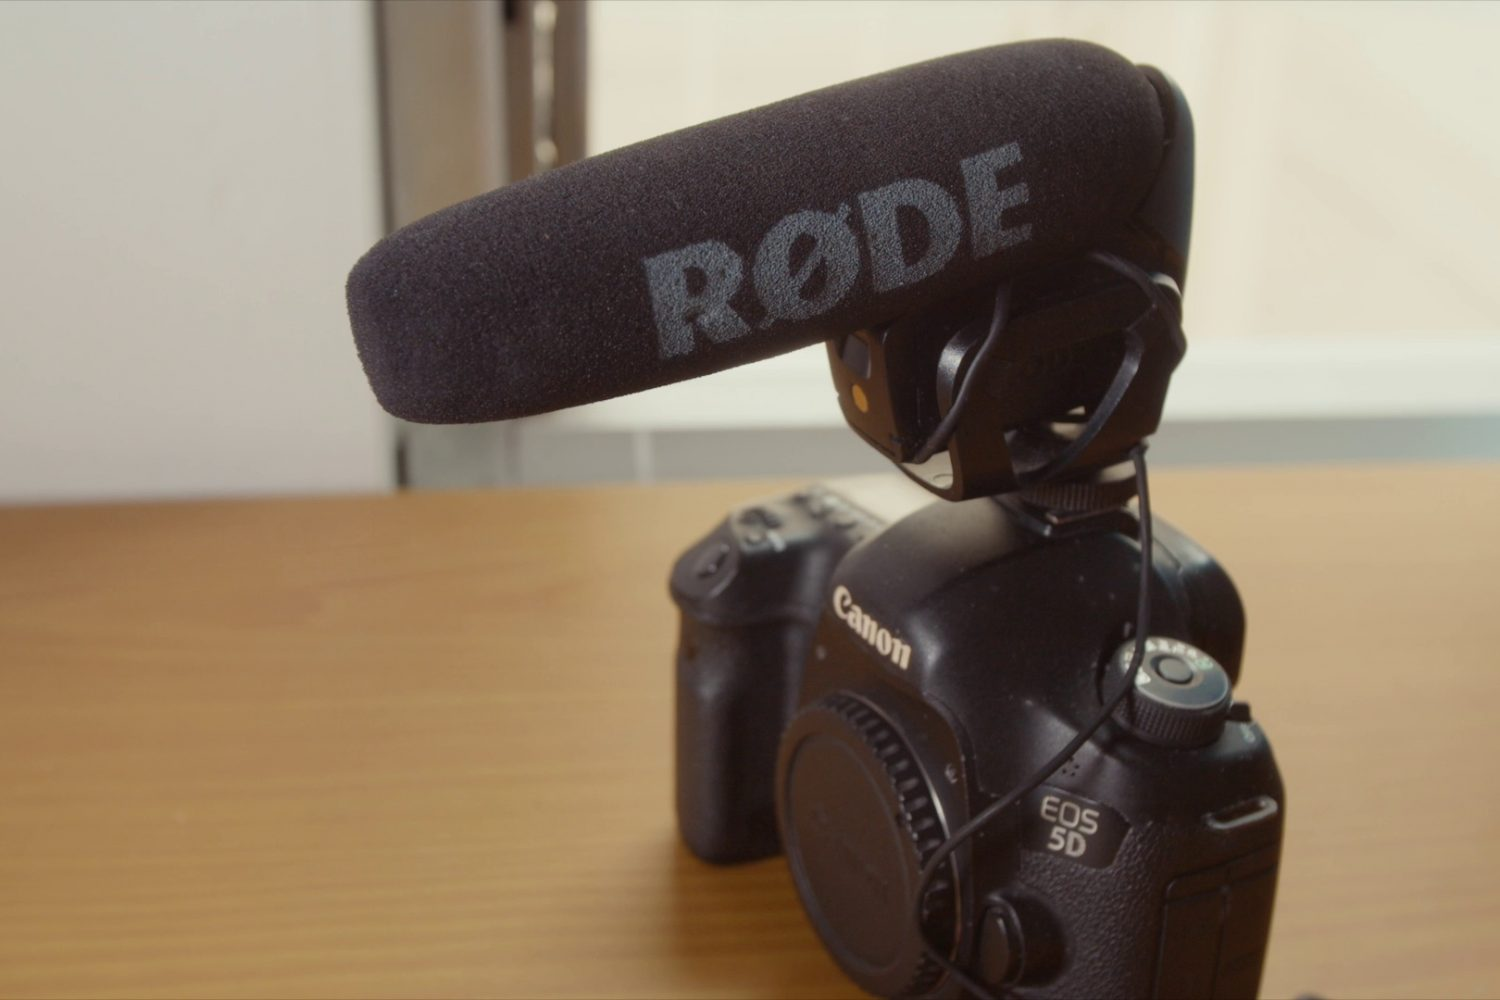 Compact Directional Microphone on DSLR